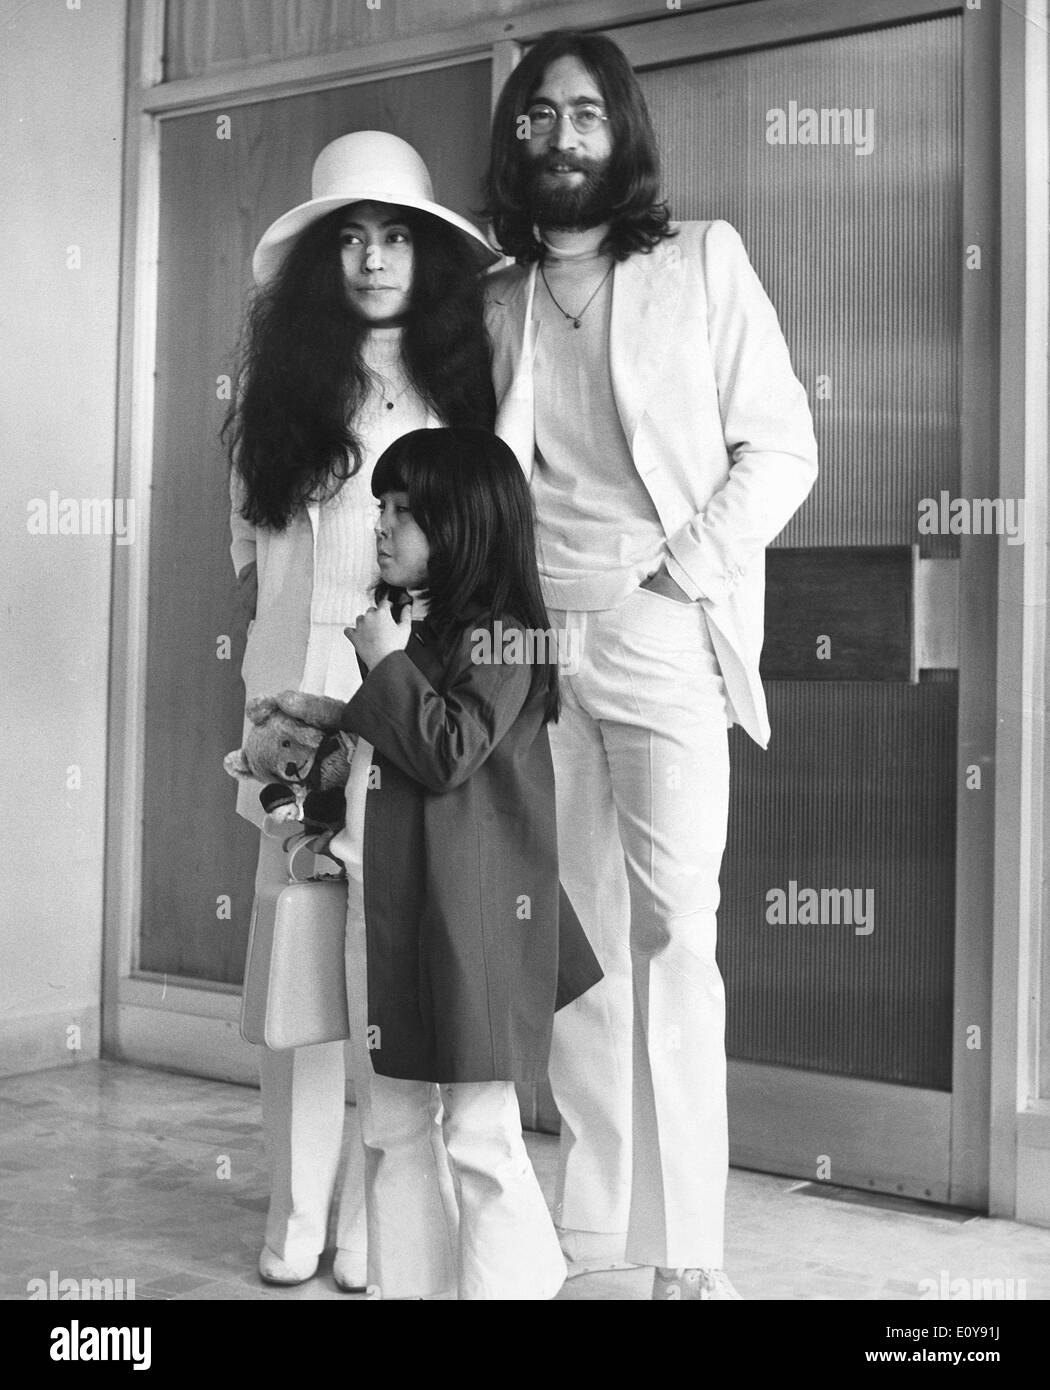 John Lennon & Yoko Ono* John Lennon And Yoko Ono - Unfinished Music No. 1: Two Virgins